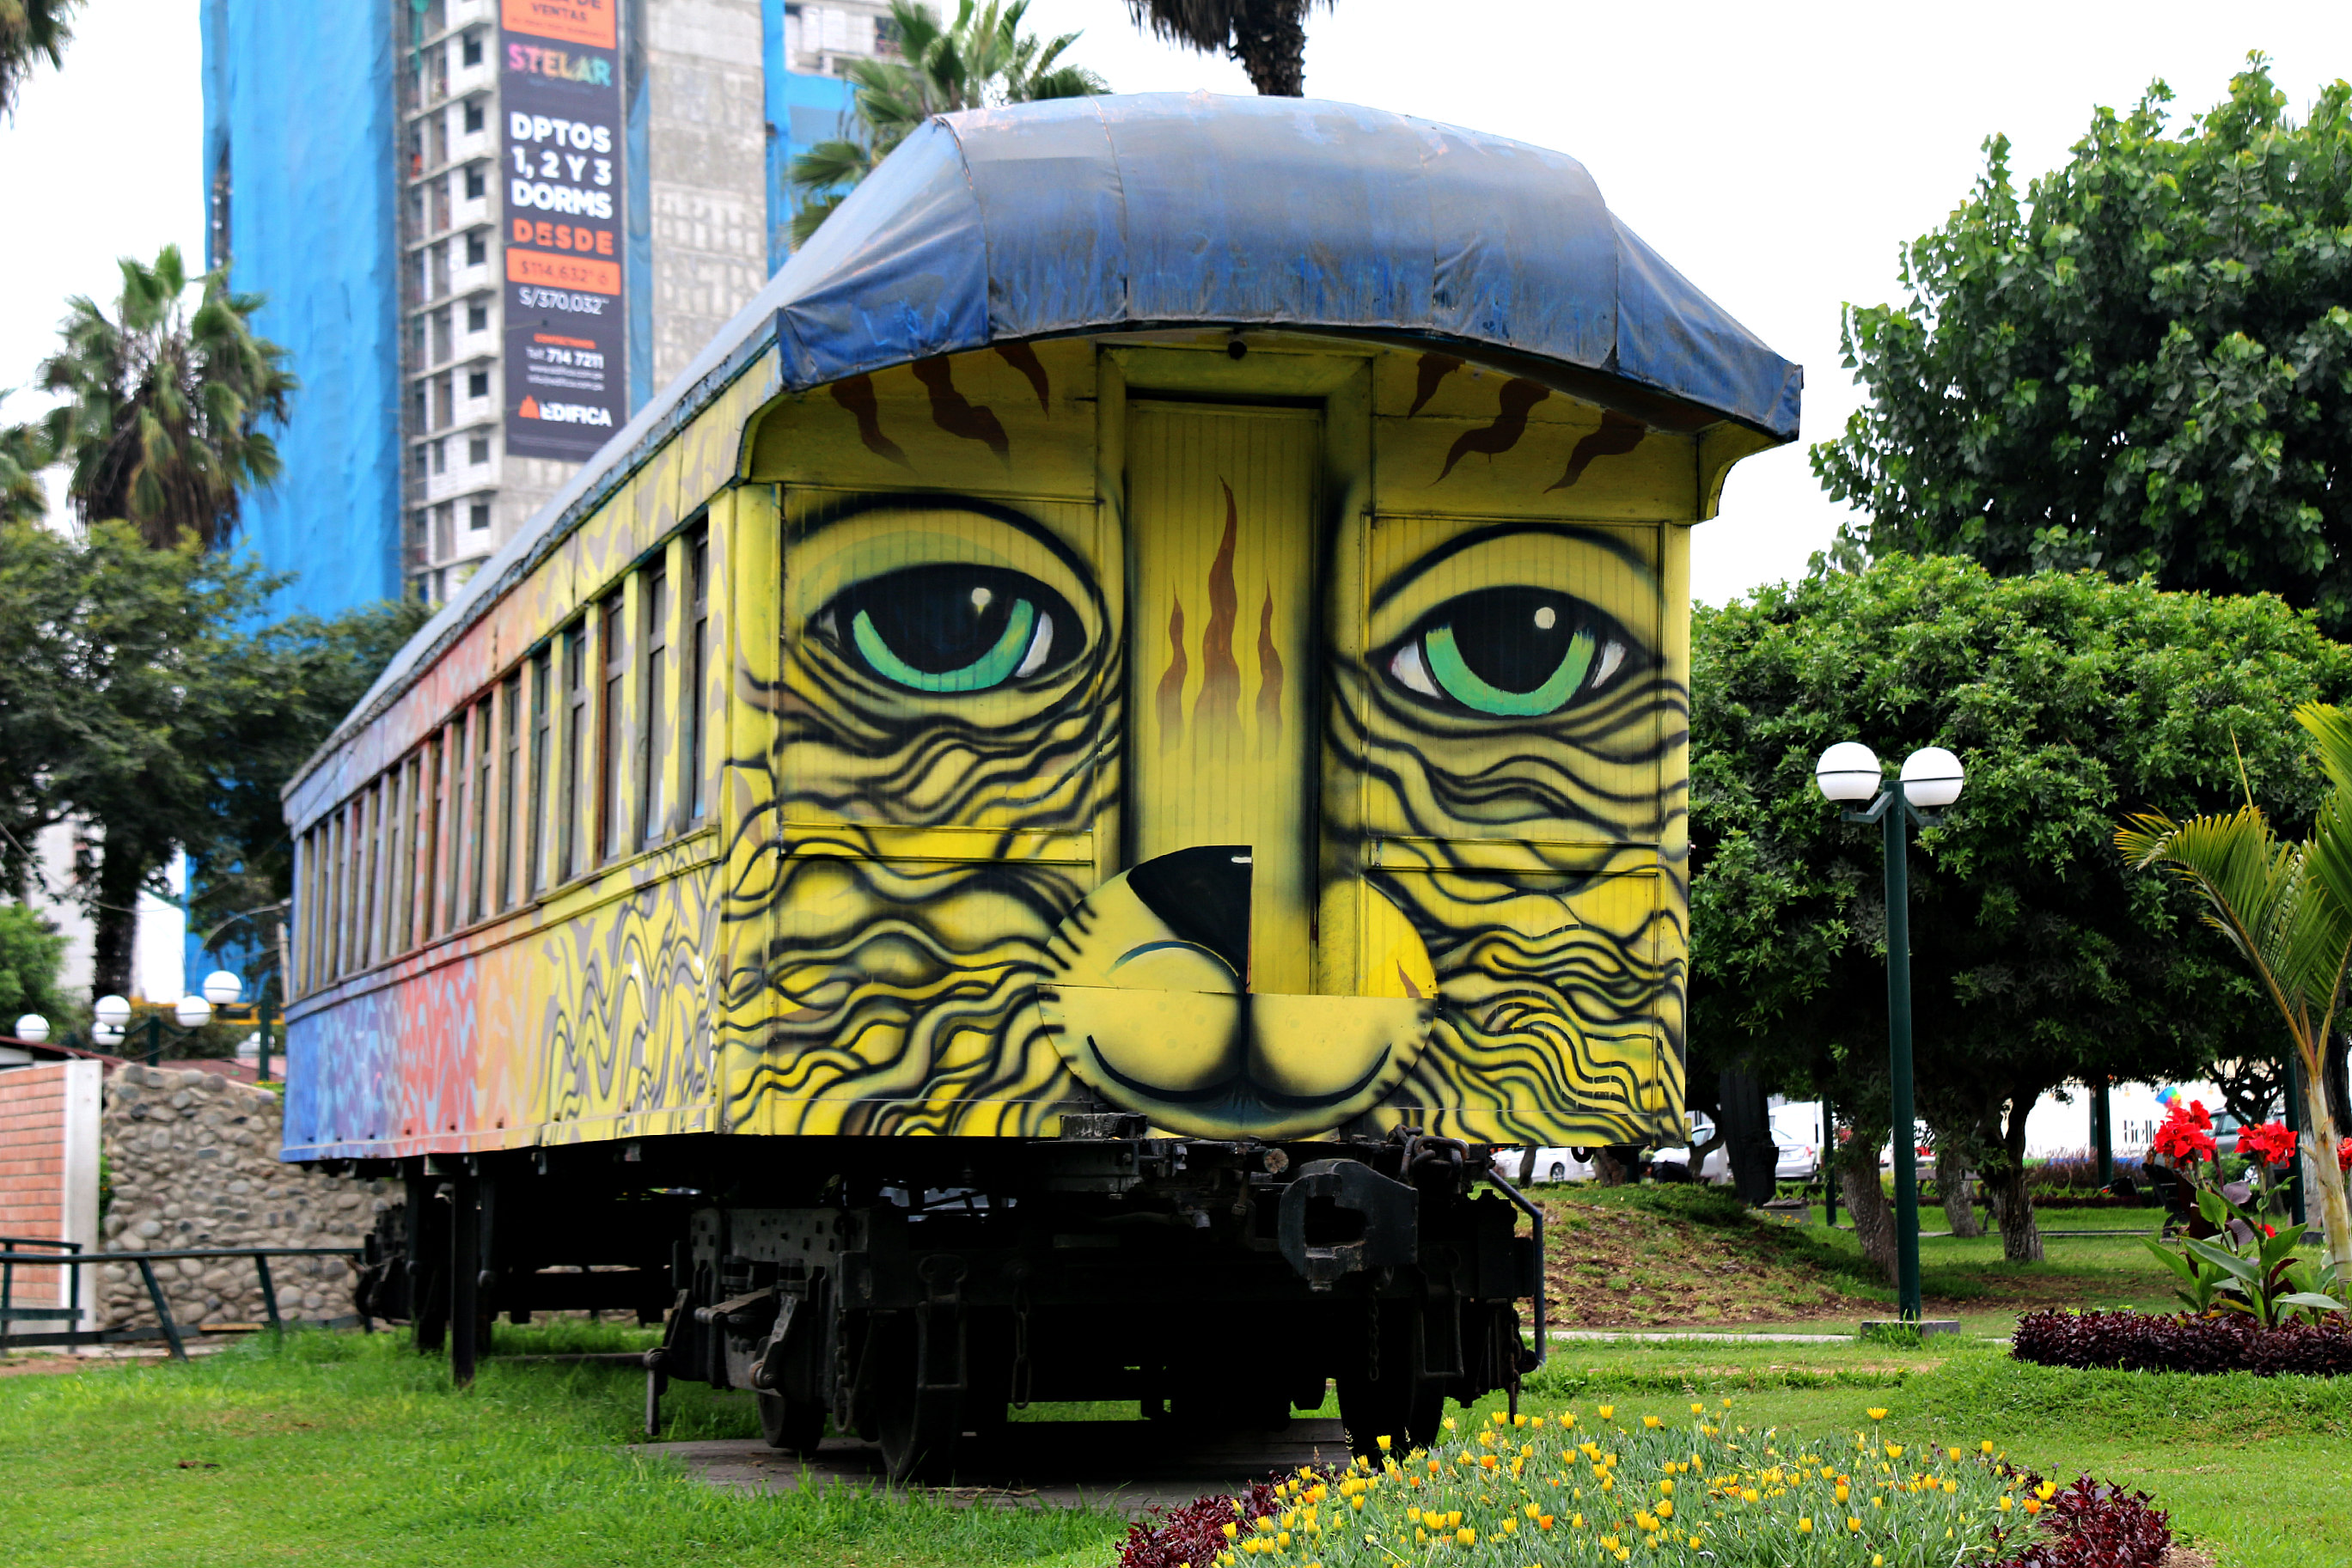 where to to find street art in Barranco, Lima cat bus by Los Salvajes aka Roberto Peremese, Nemo, Jimbo